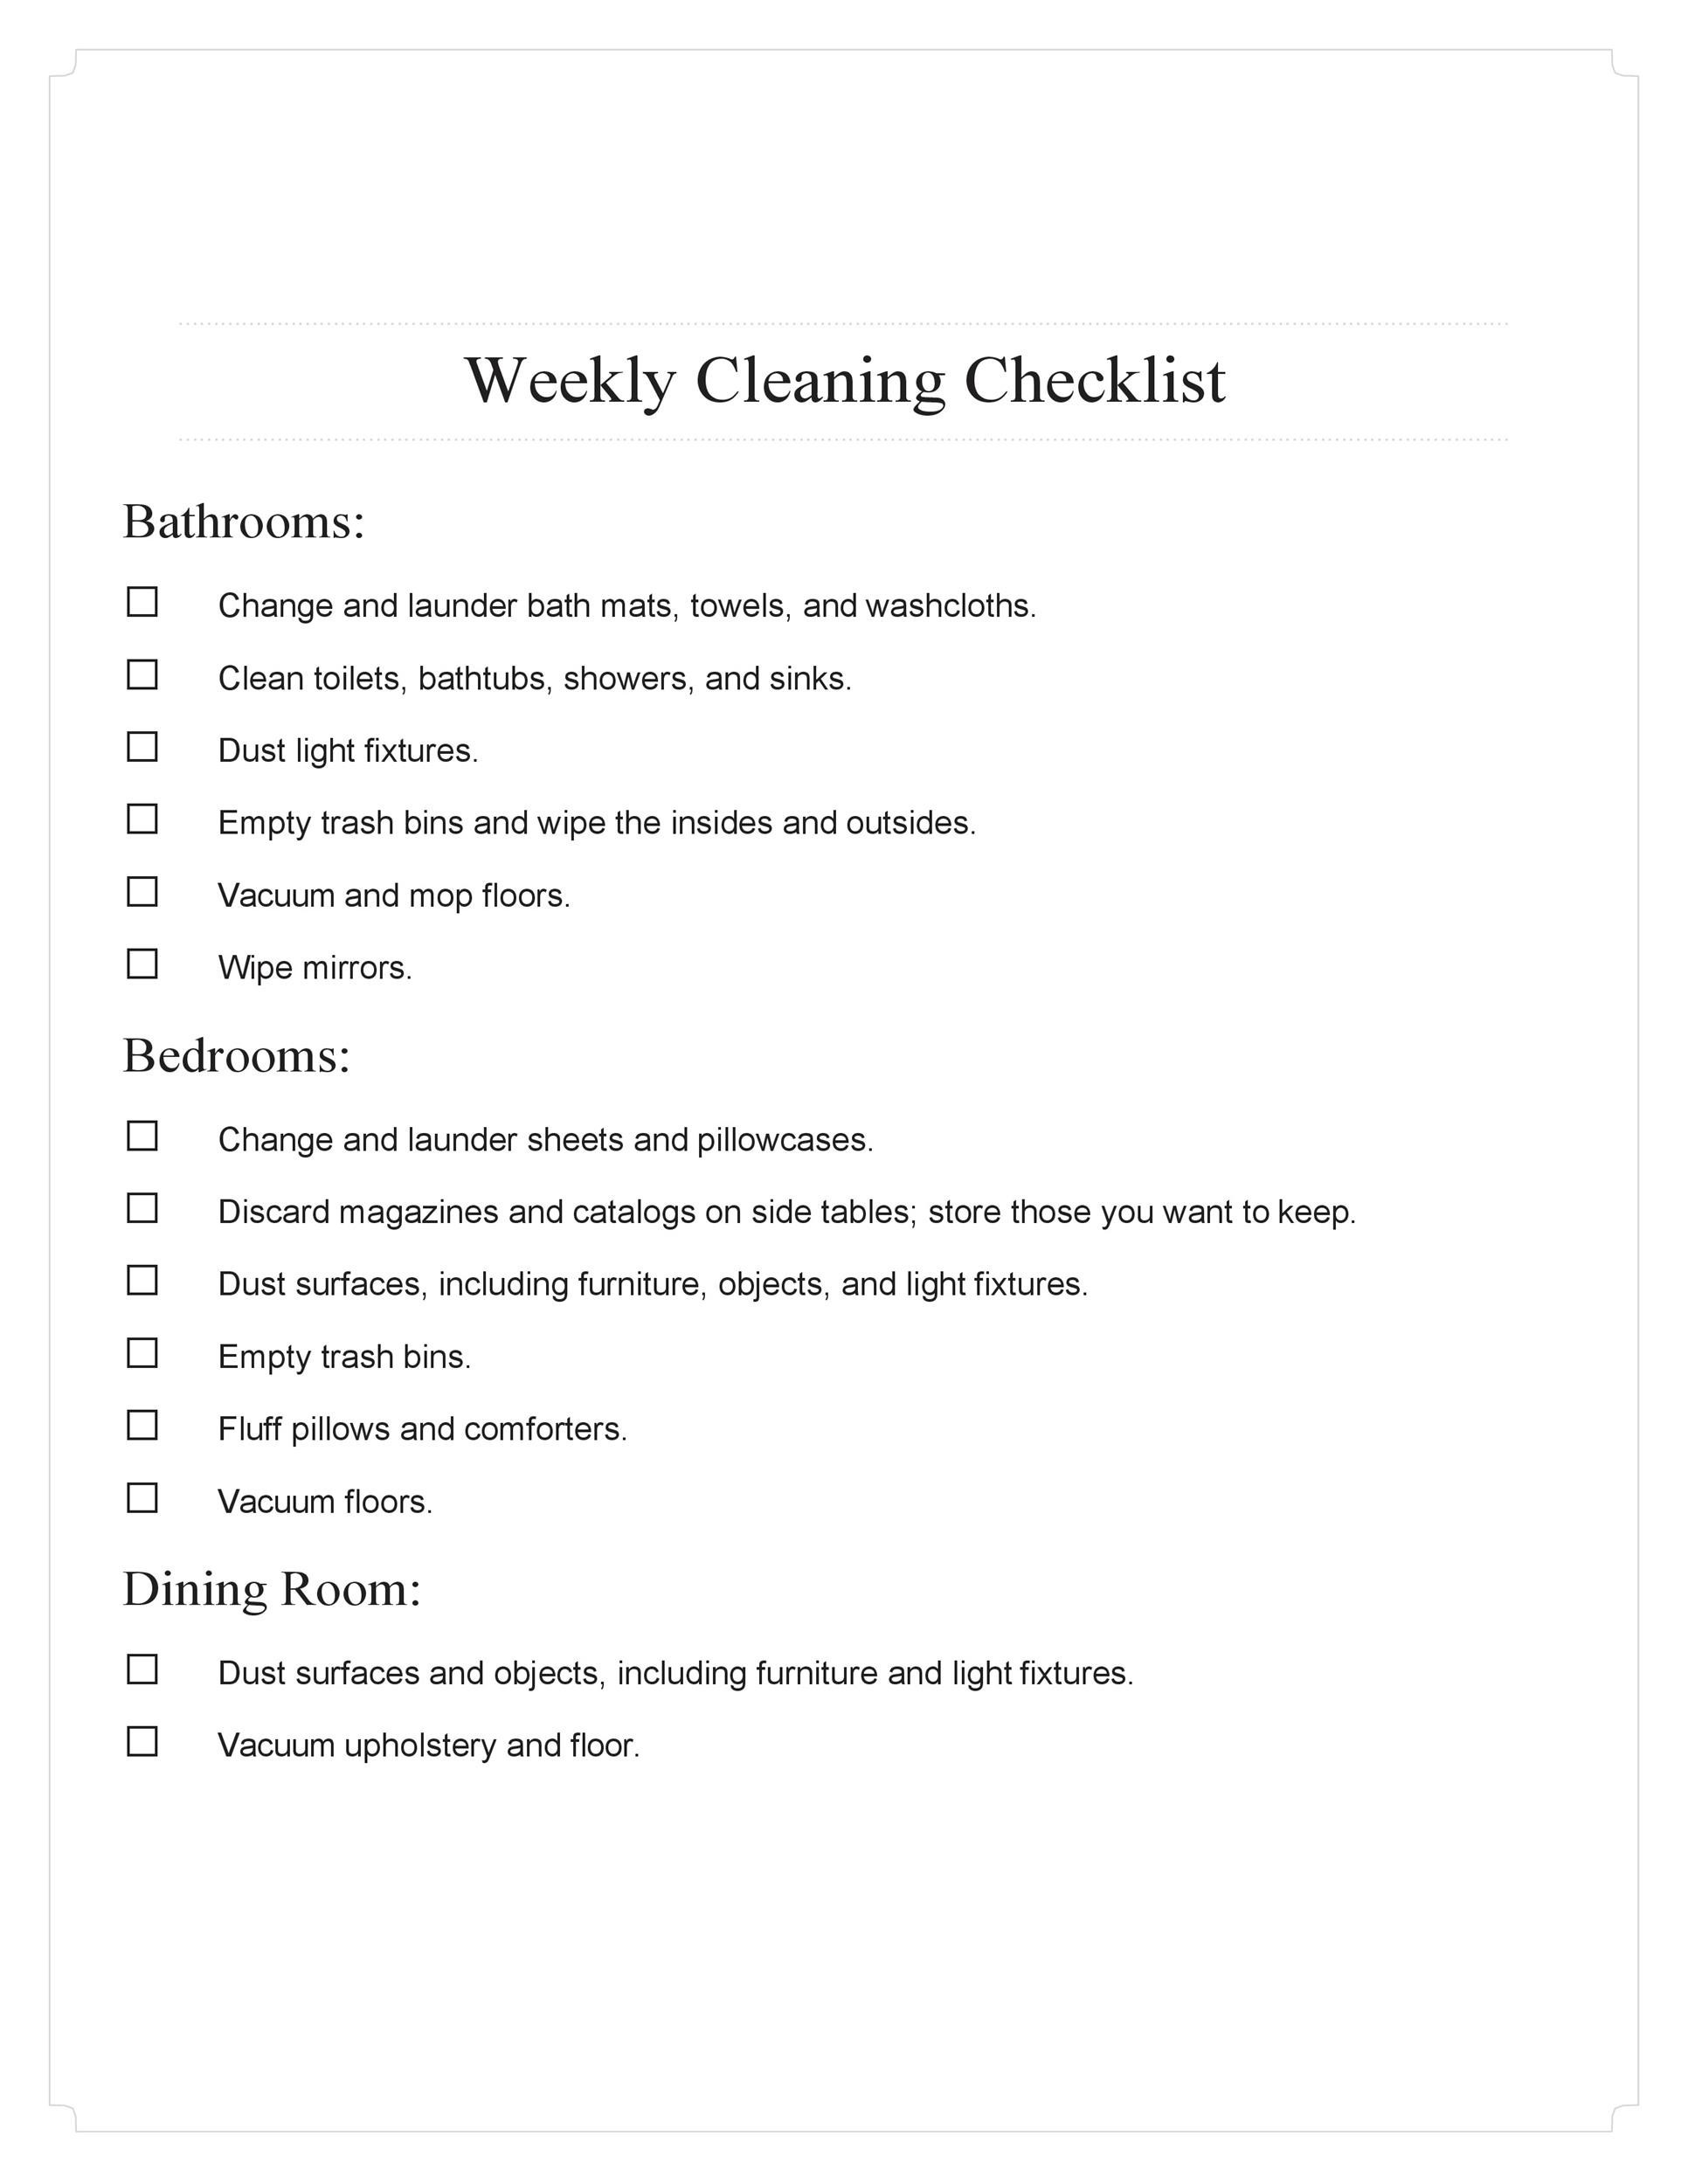 photo regarding House Cleaning Checklist Printable titled 40 Printable Place Cleansing Record Templates ᐅ Template Lab